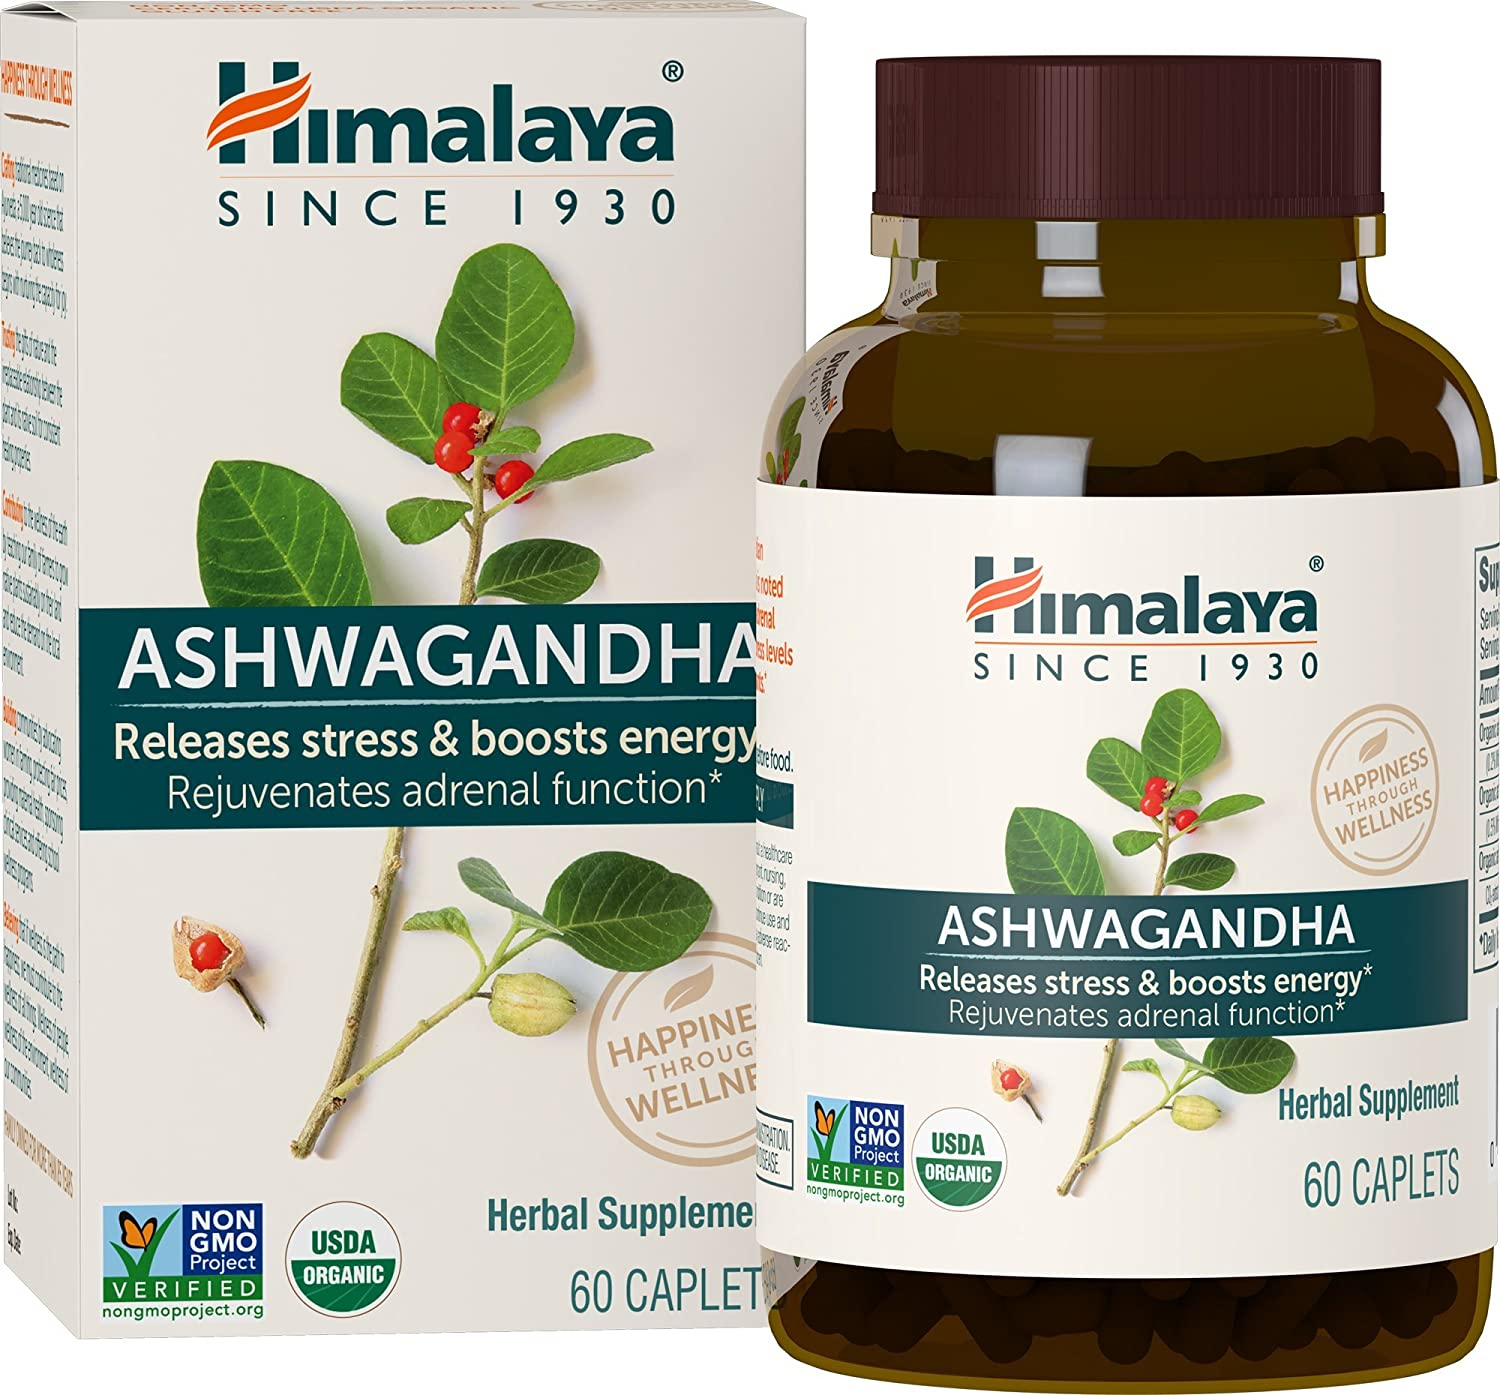 Himalaya Organic Ashwagandha, Adaptogen for Stress-relief, Cortisol level support and Energy Boost, 60 Caplets, 670 mg 2 PACK